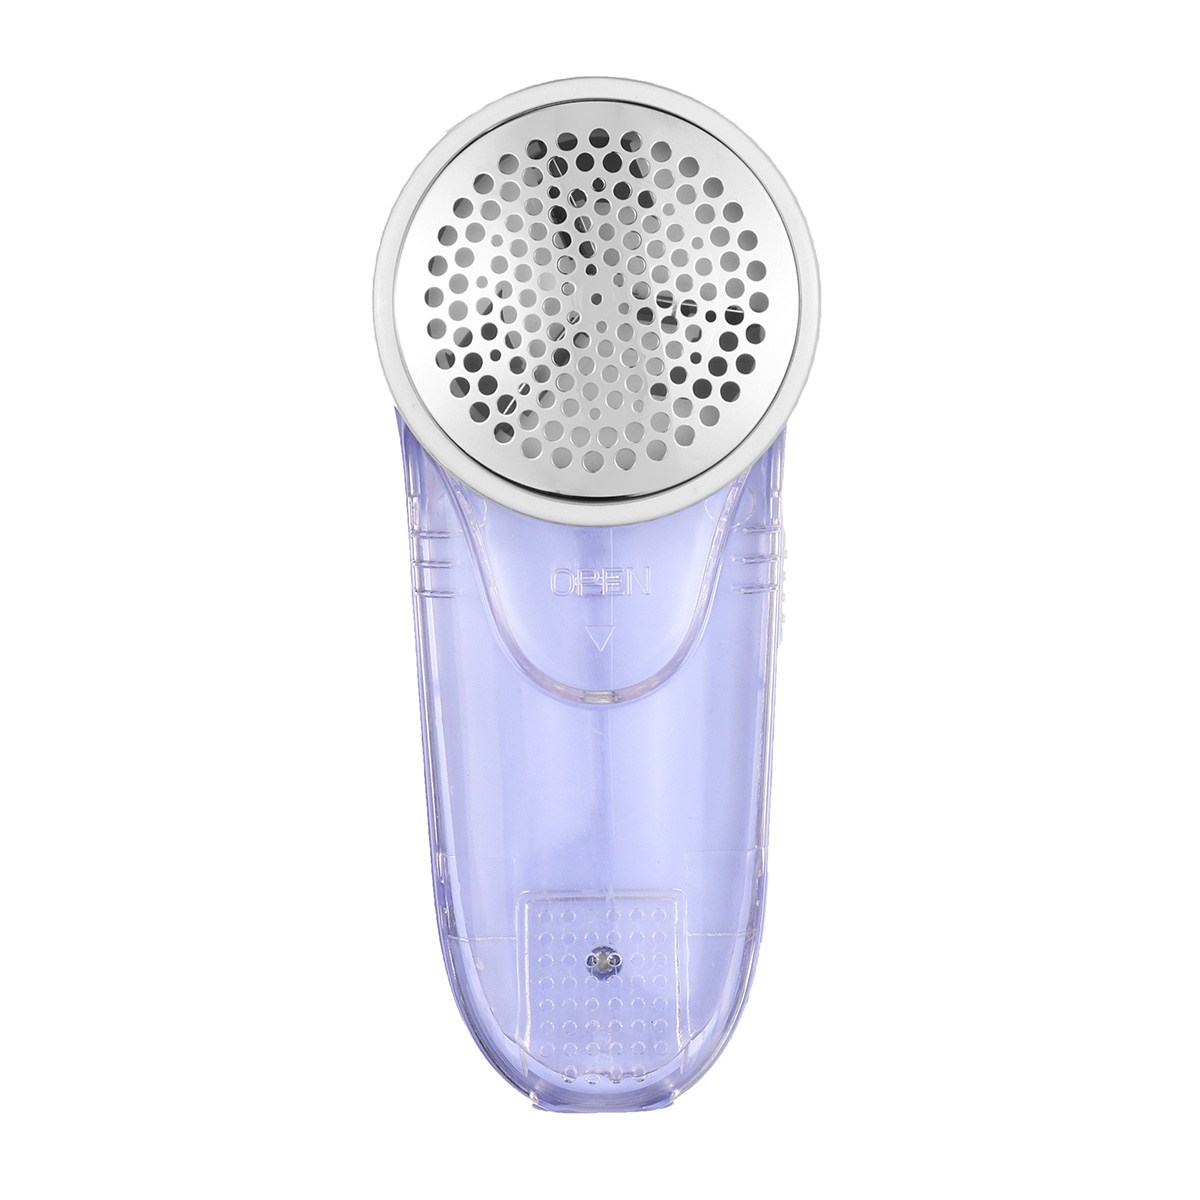 Portable Electric Sweater Lint Remover Fabric Shaver Clothes Lint Fuzz Pill Fluff Remover